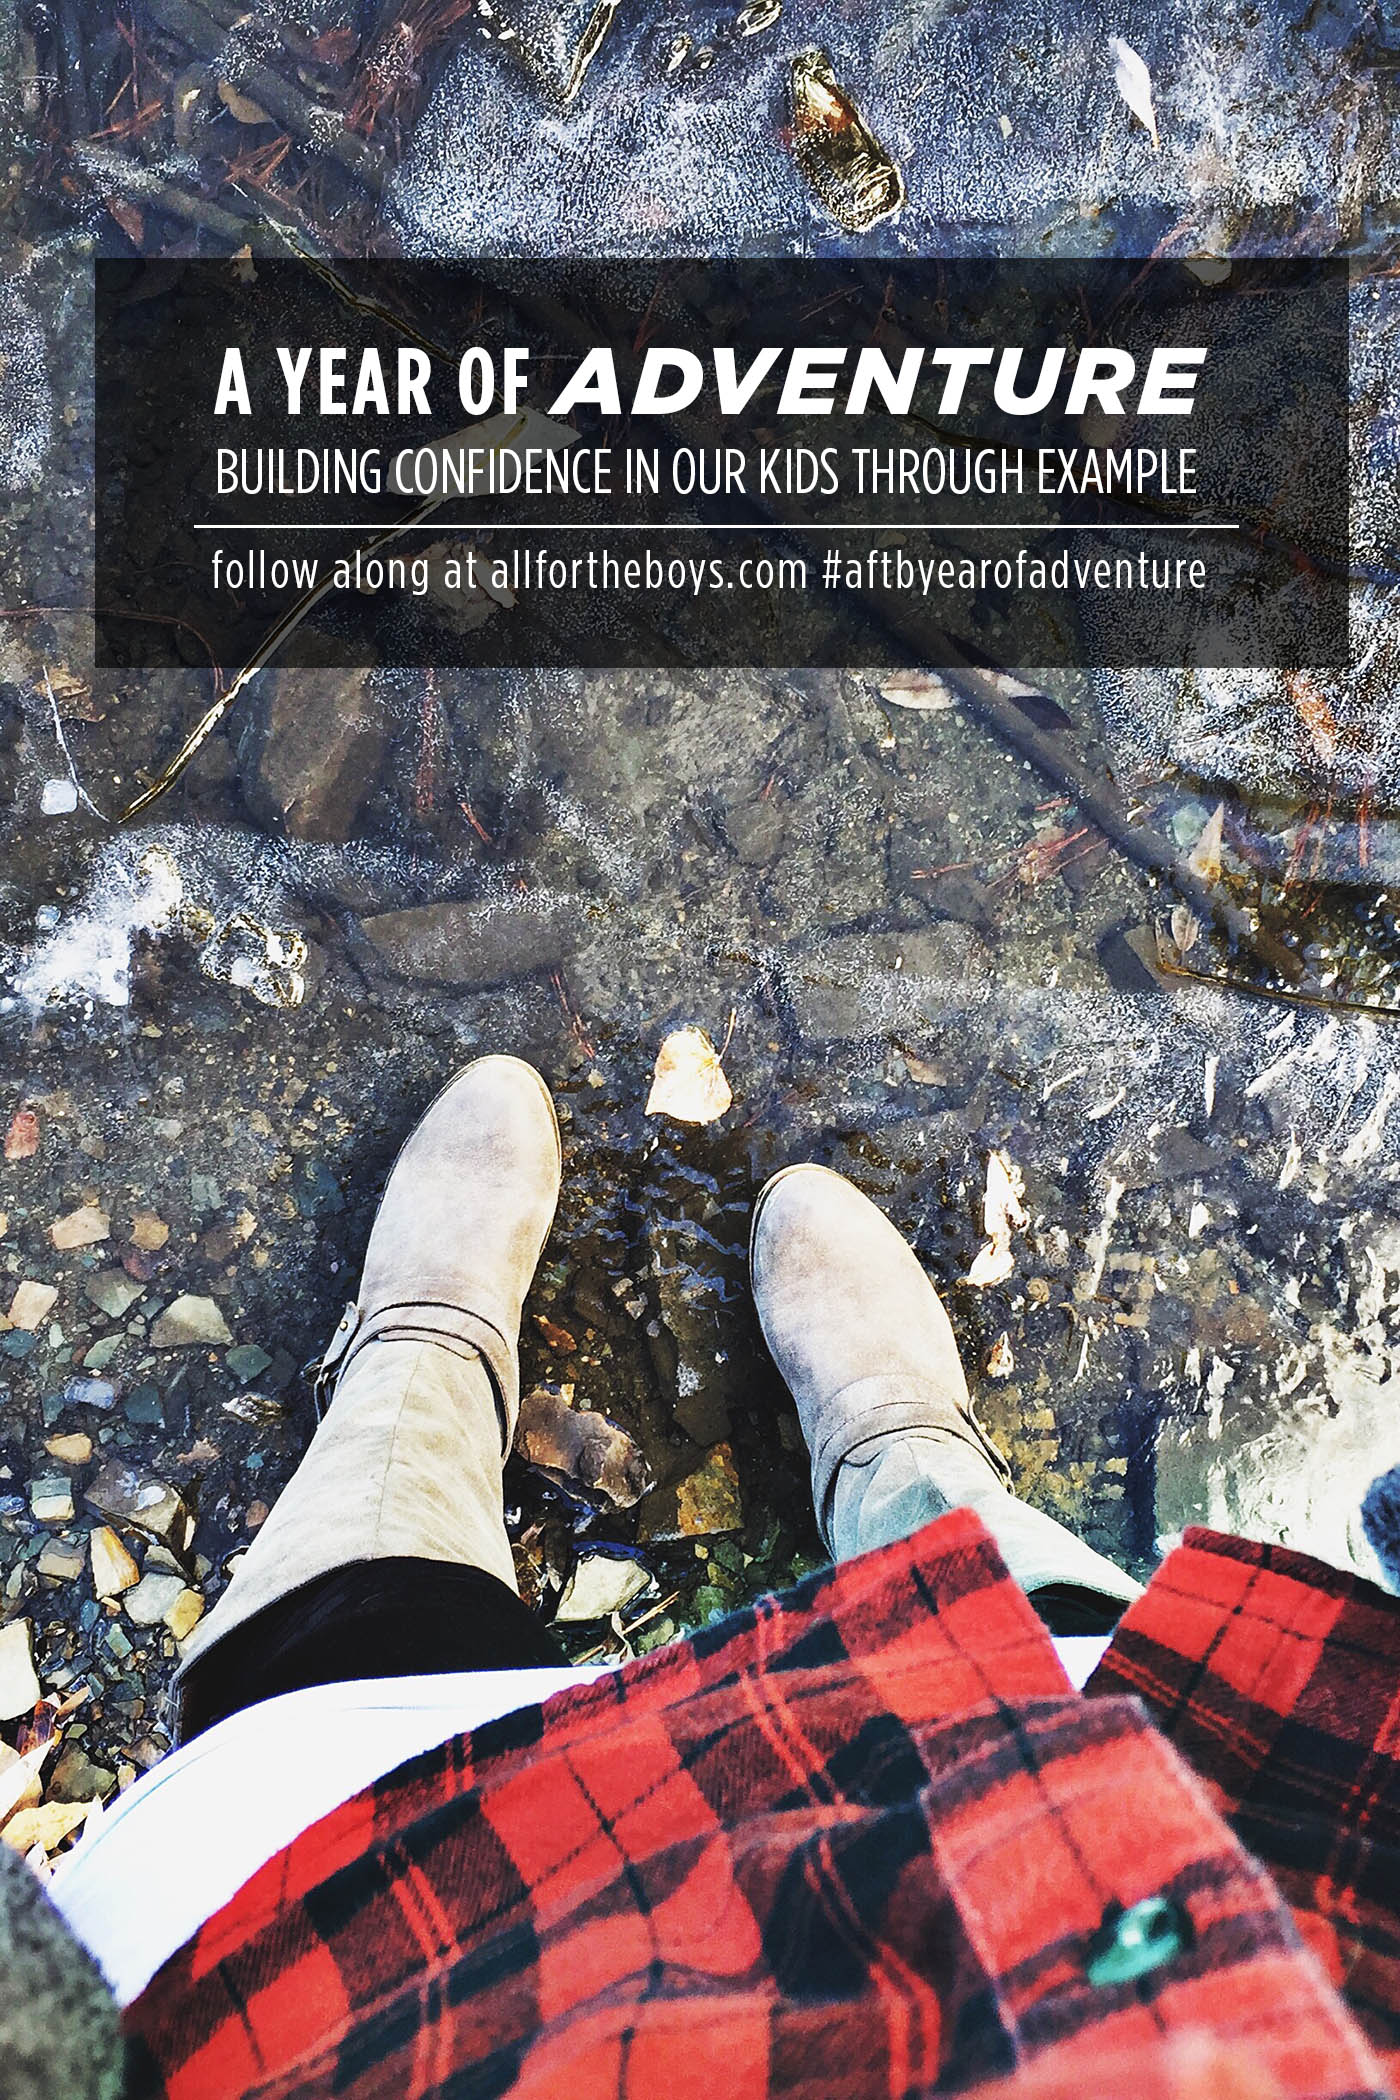 A year of adventure - building confidence in our kids through example. Follow along at allfortheboys.com #aftbyearofadventure